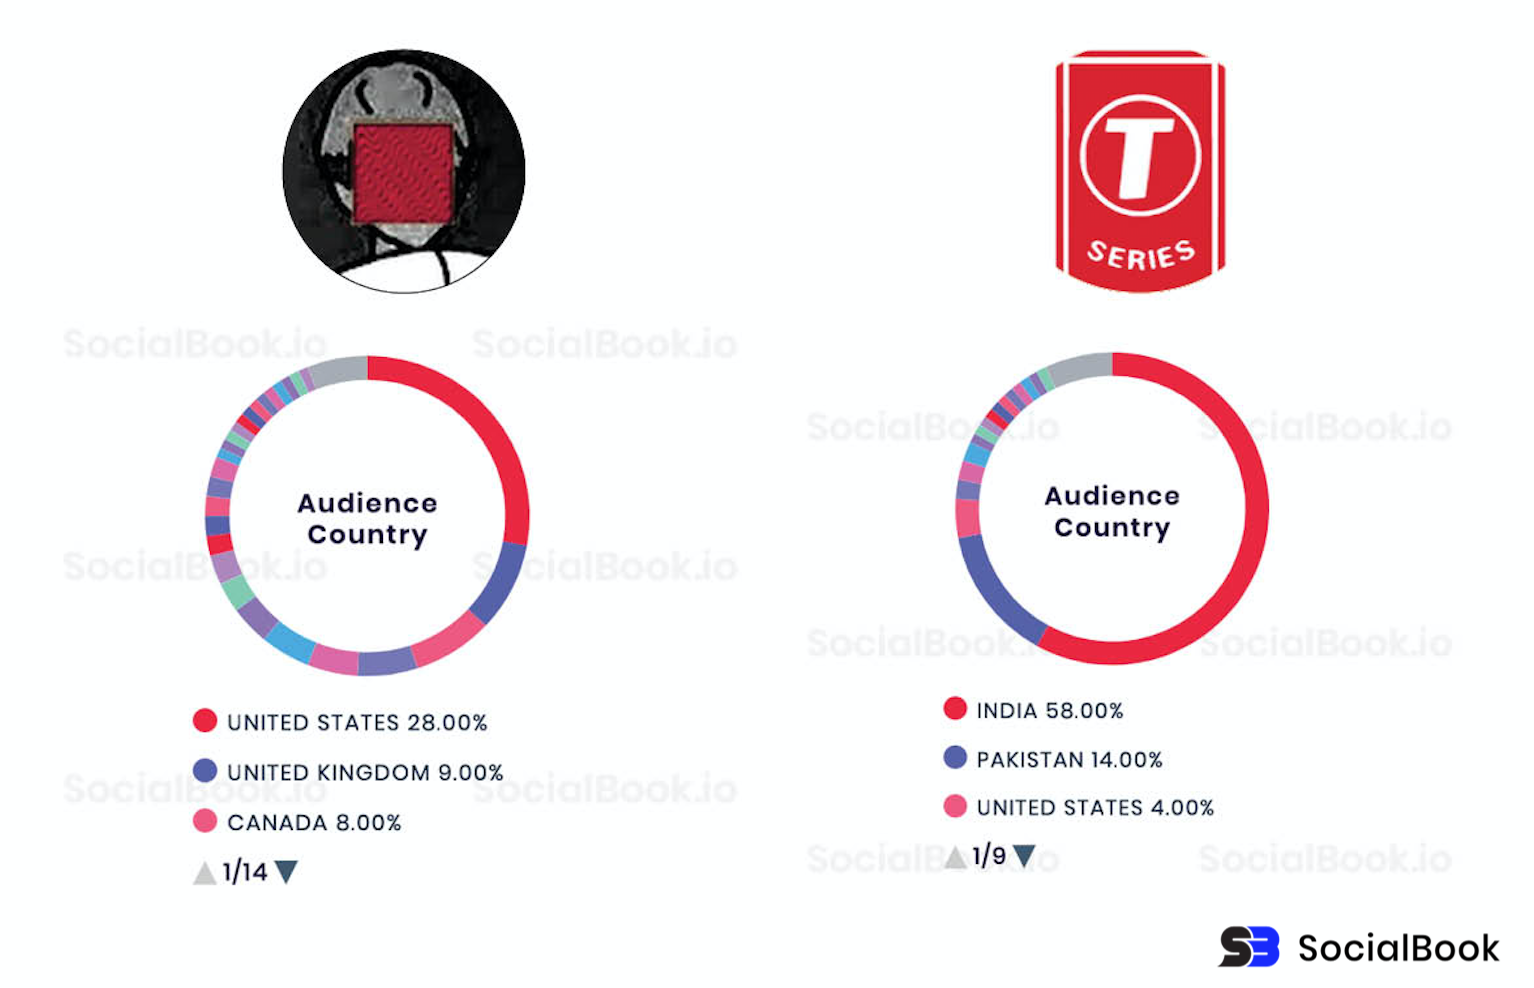 PewDiePie vs T-Series follower demographics geo location comparison. (Data from SocialBook)